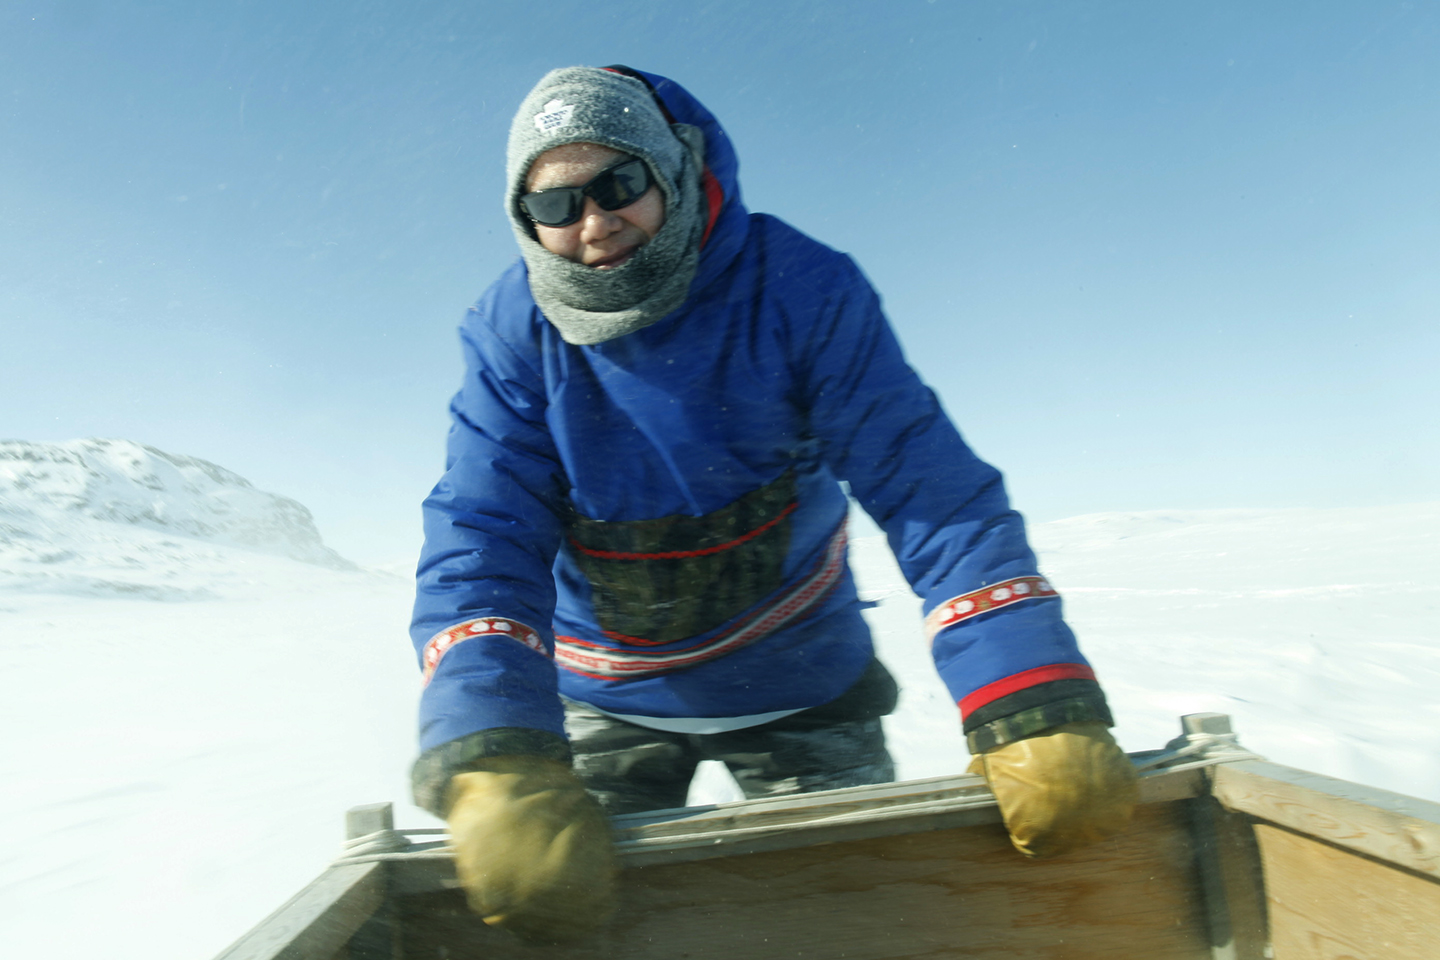 Parr surfing on the qamutik (sled)